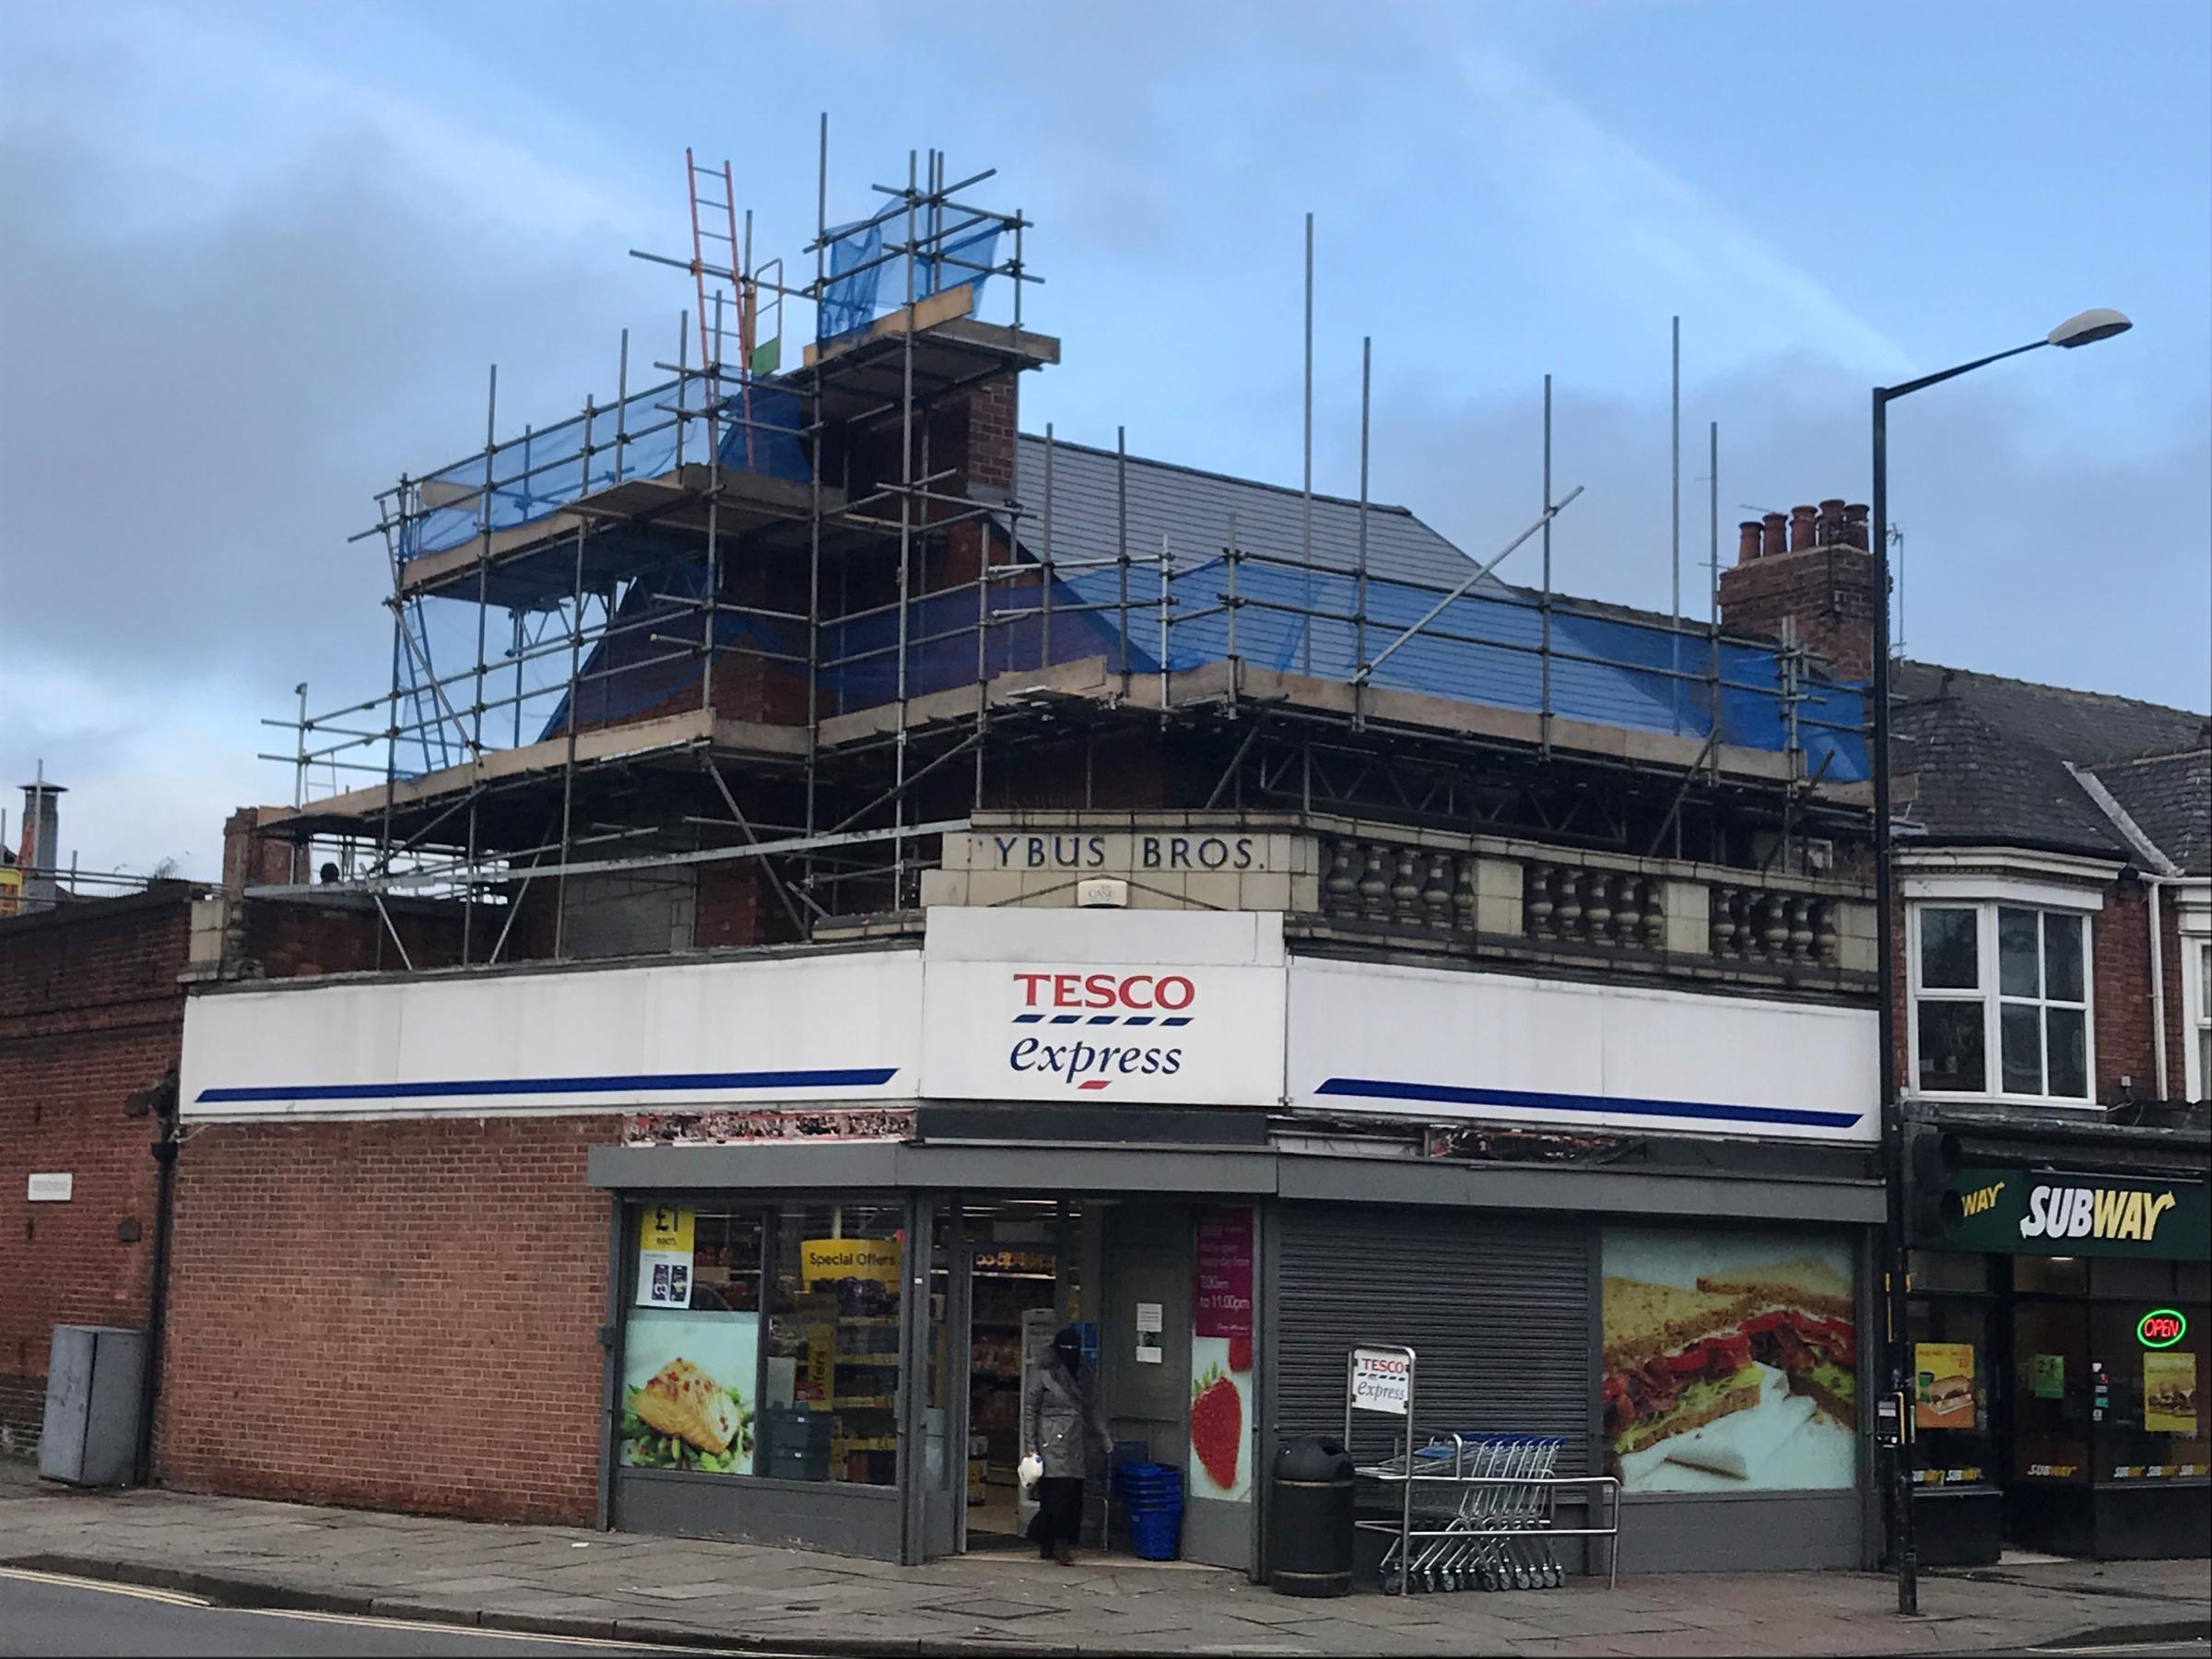 HERITAGE: The Pybus Brothers Building, in a conservation area in Linthorpe, Middlesbrough